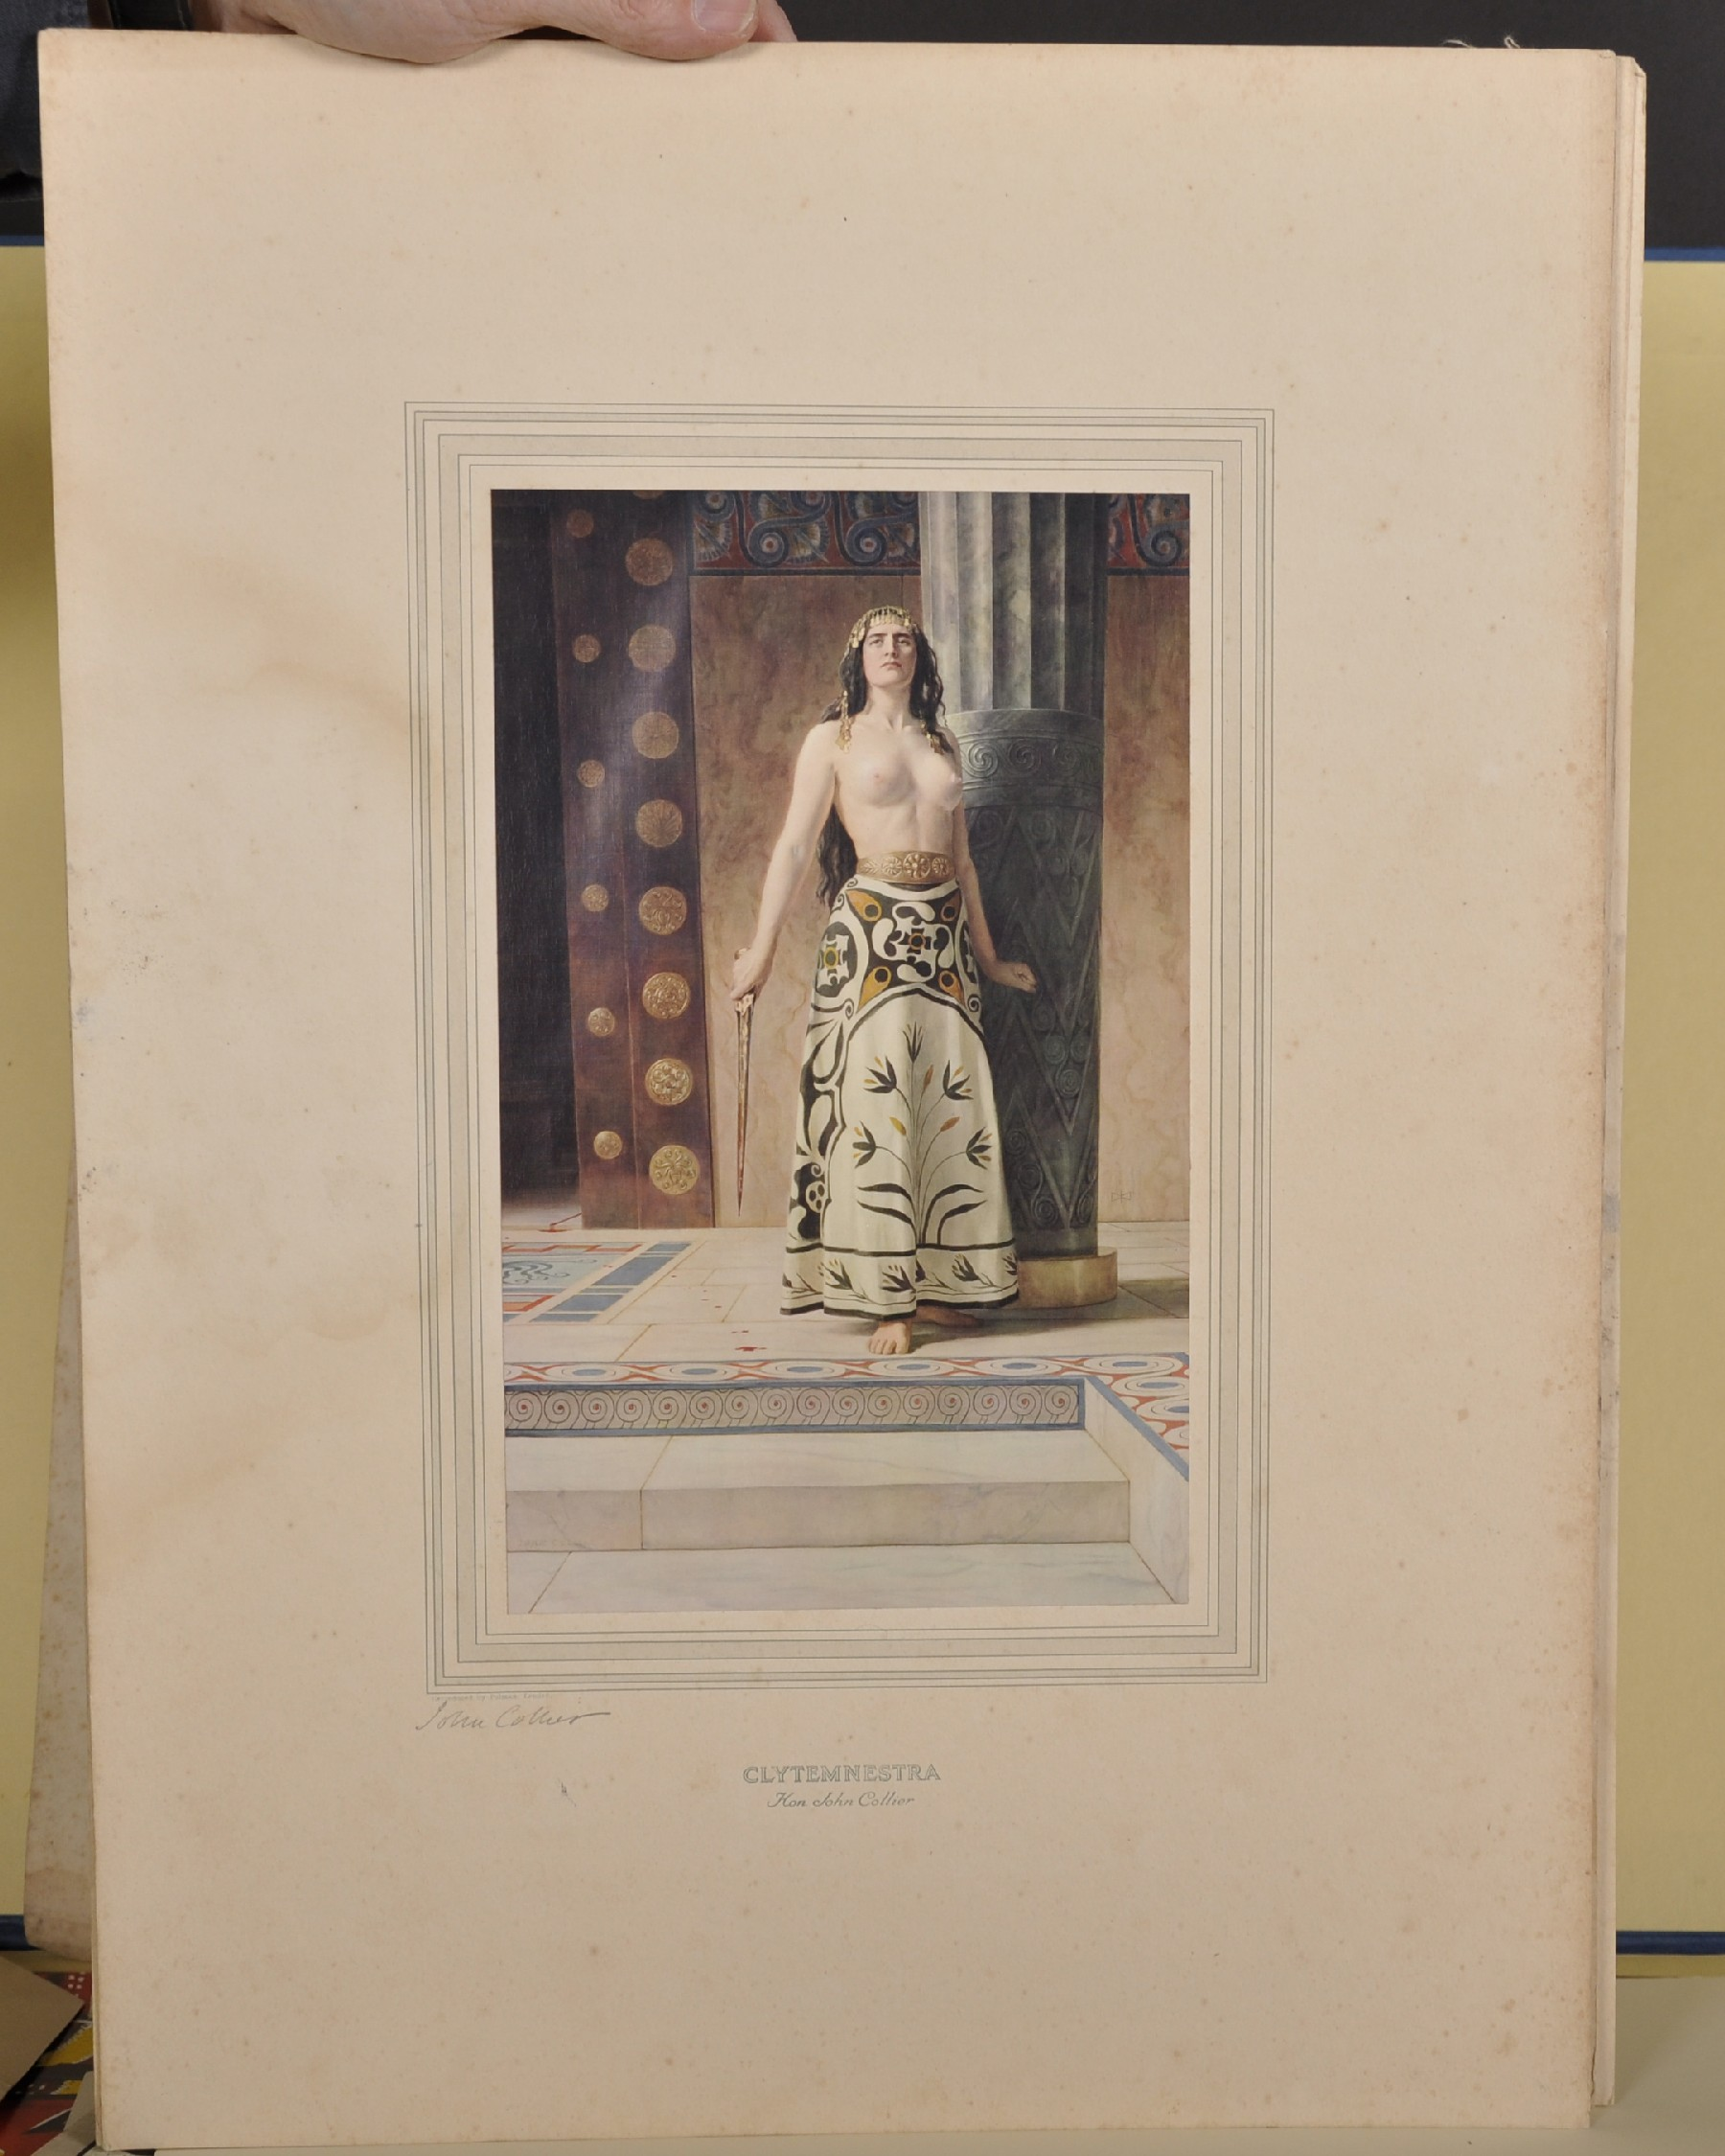 """After John Collier (1850-1934) British. """"Clytemnestra"""", Colour Reproduction, Signed in Pencil, - Image 2 of 8"""